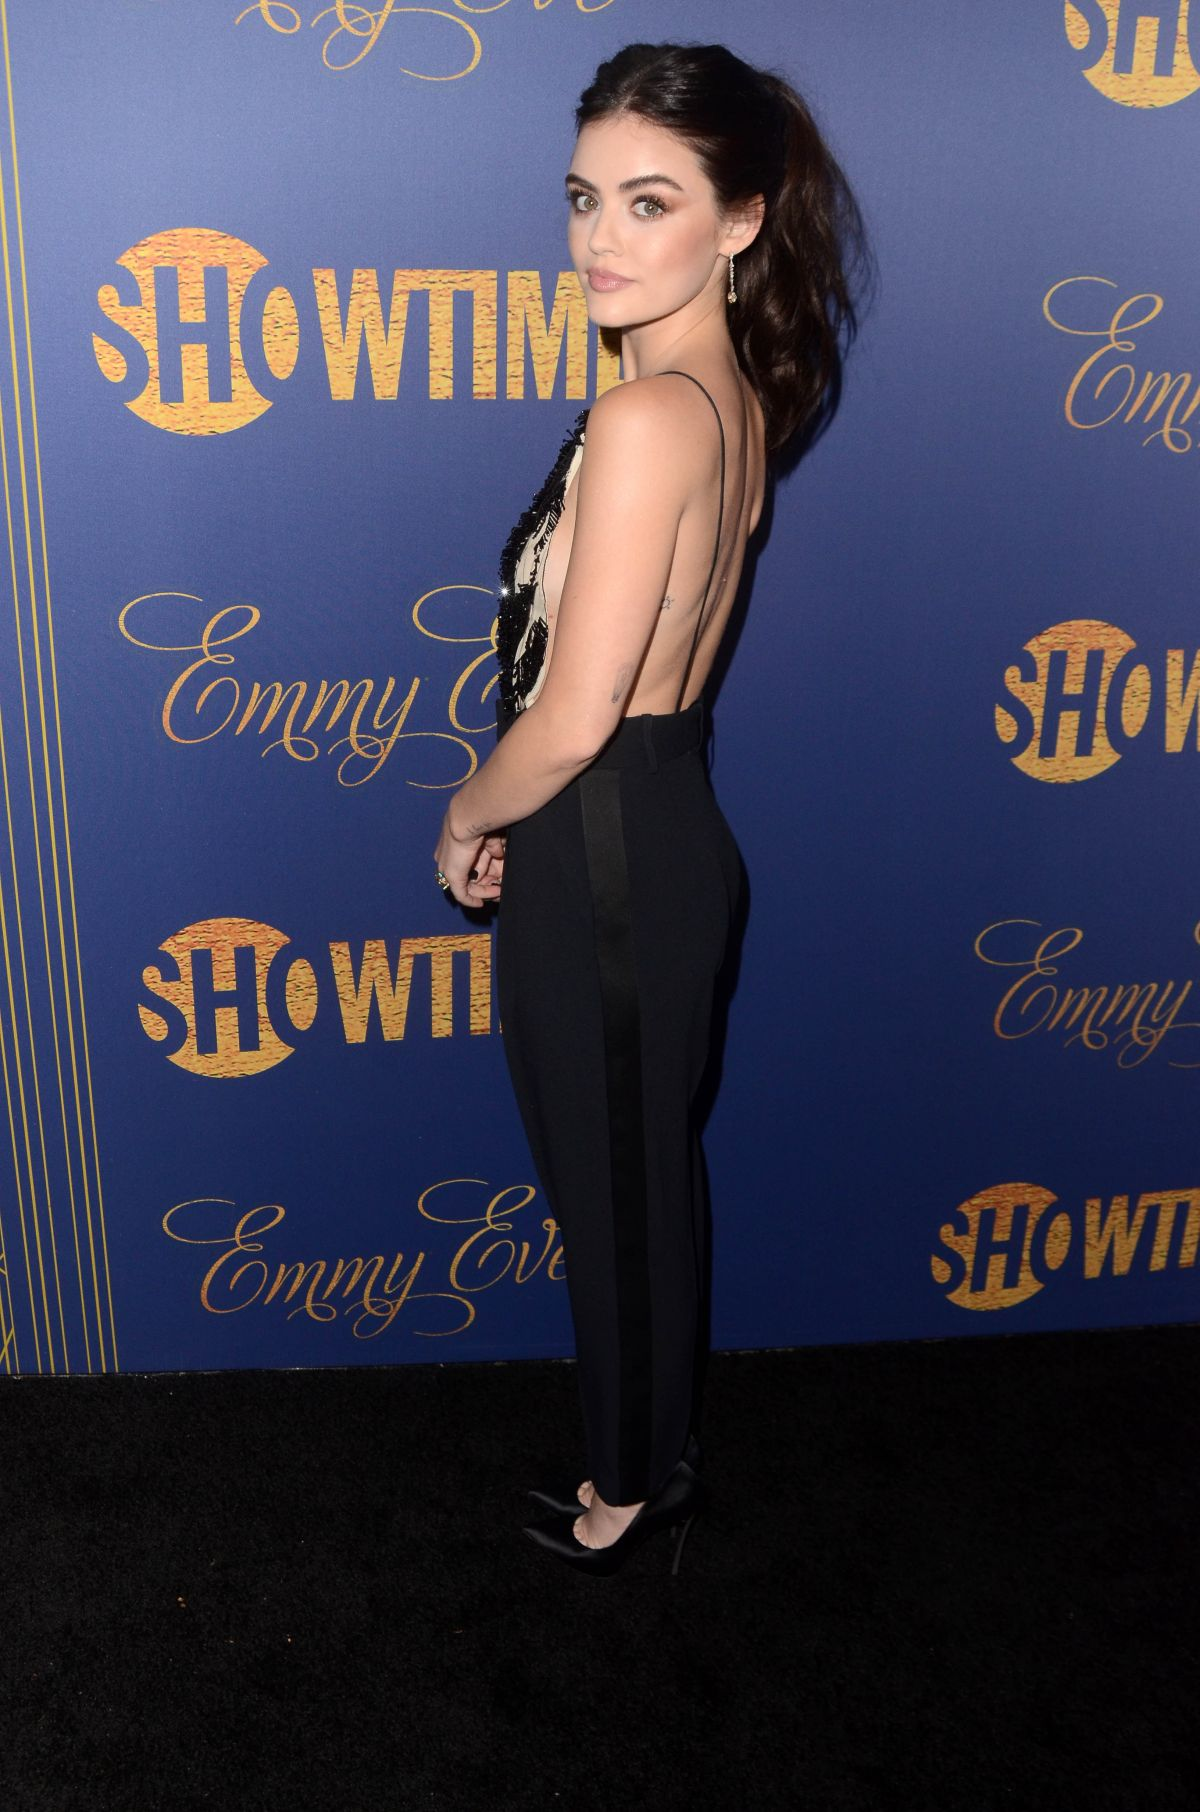 Lucy hale at showtime emmy eve nominees celebration in los angeles naked (59 photo), Fappening Celebrites images